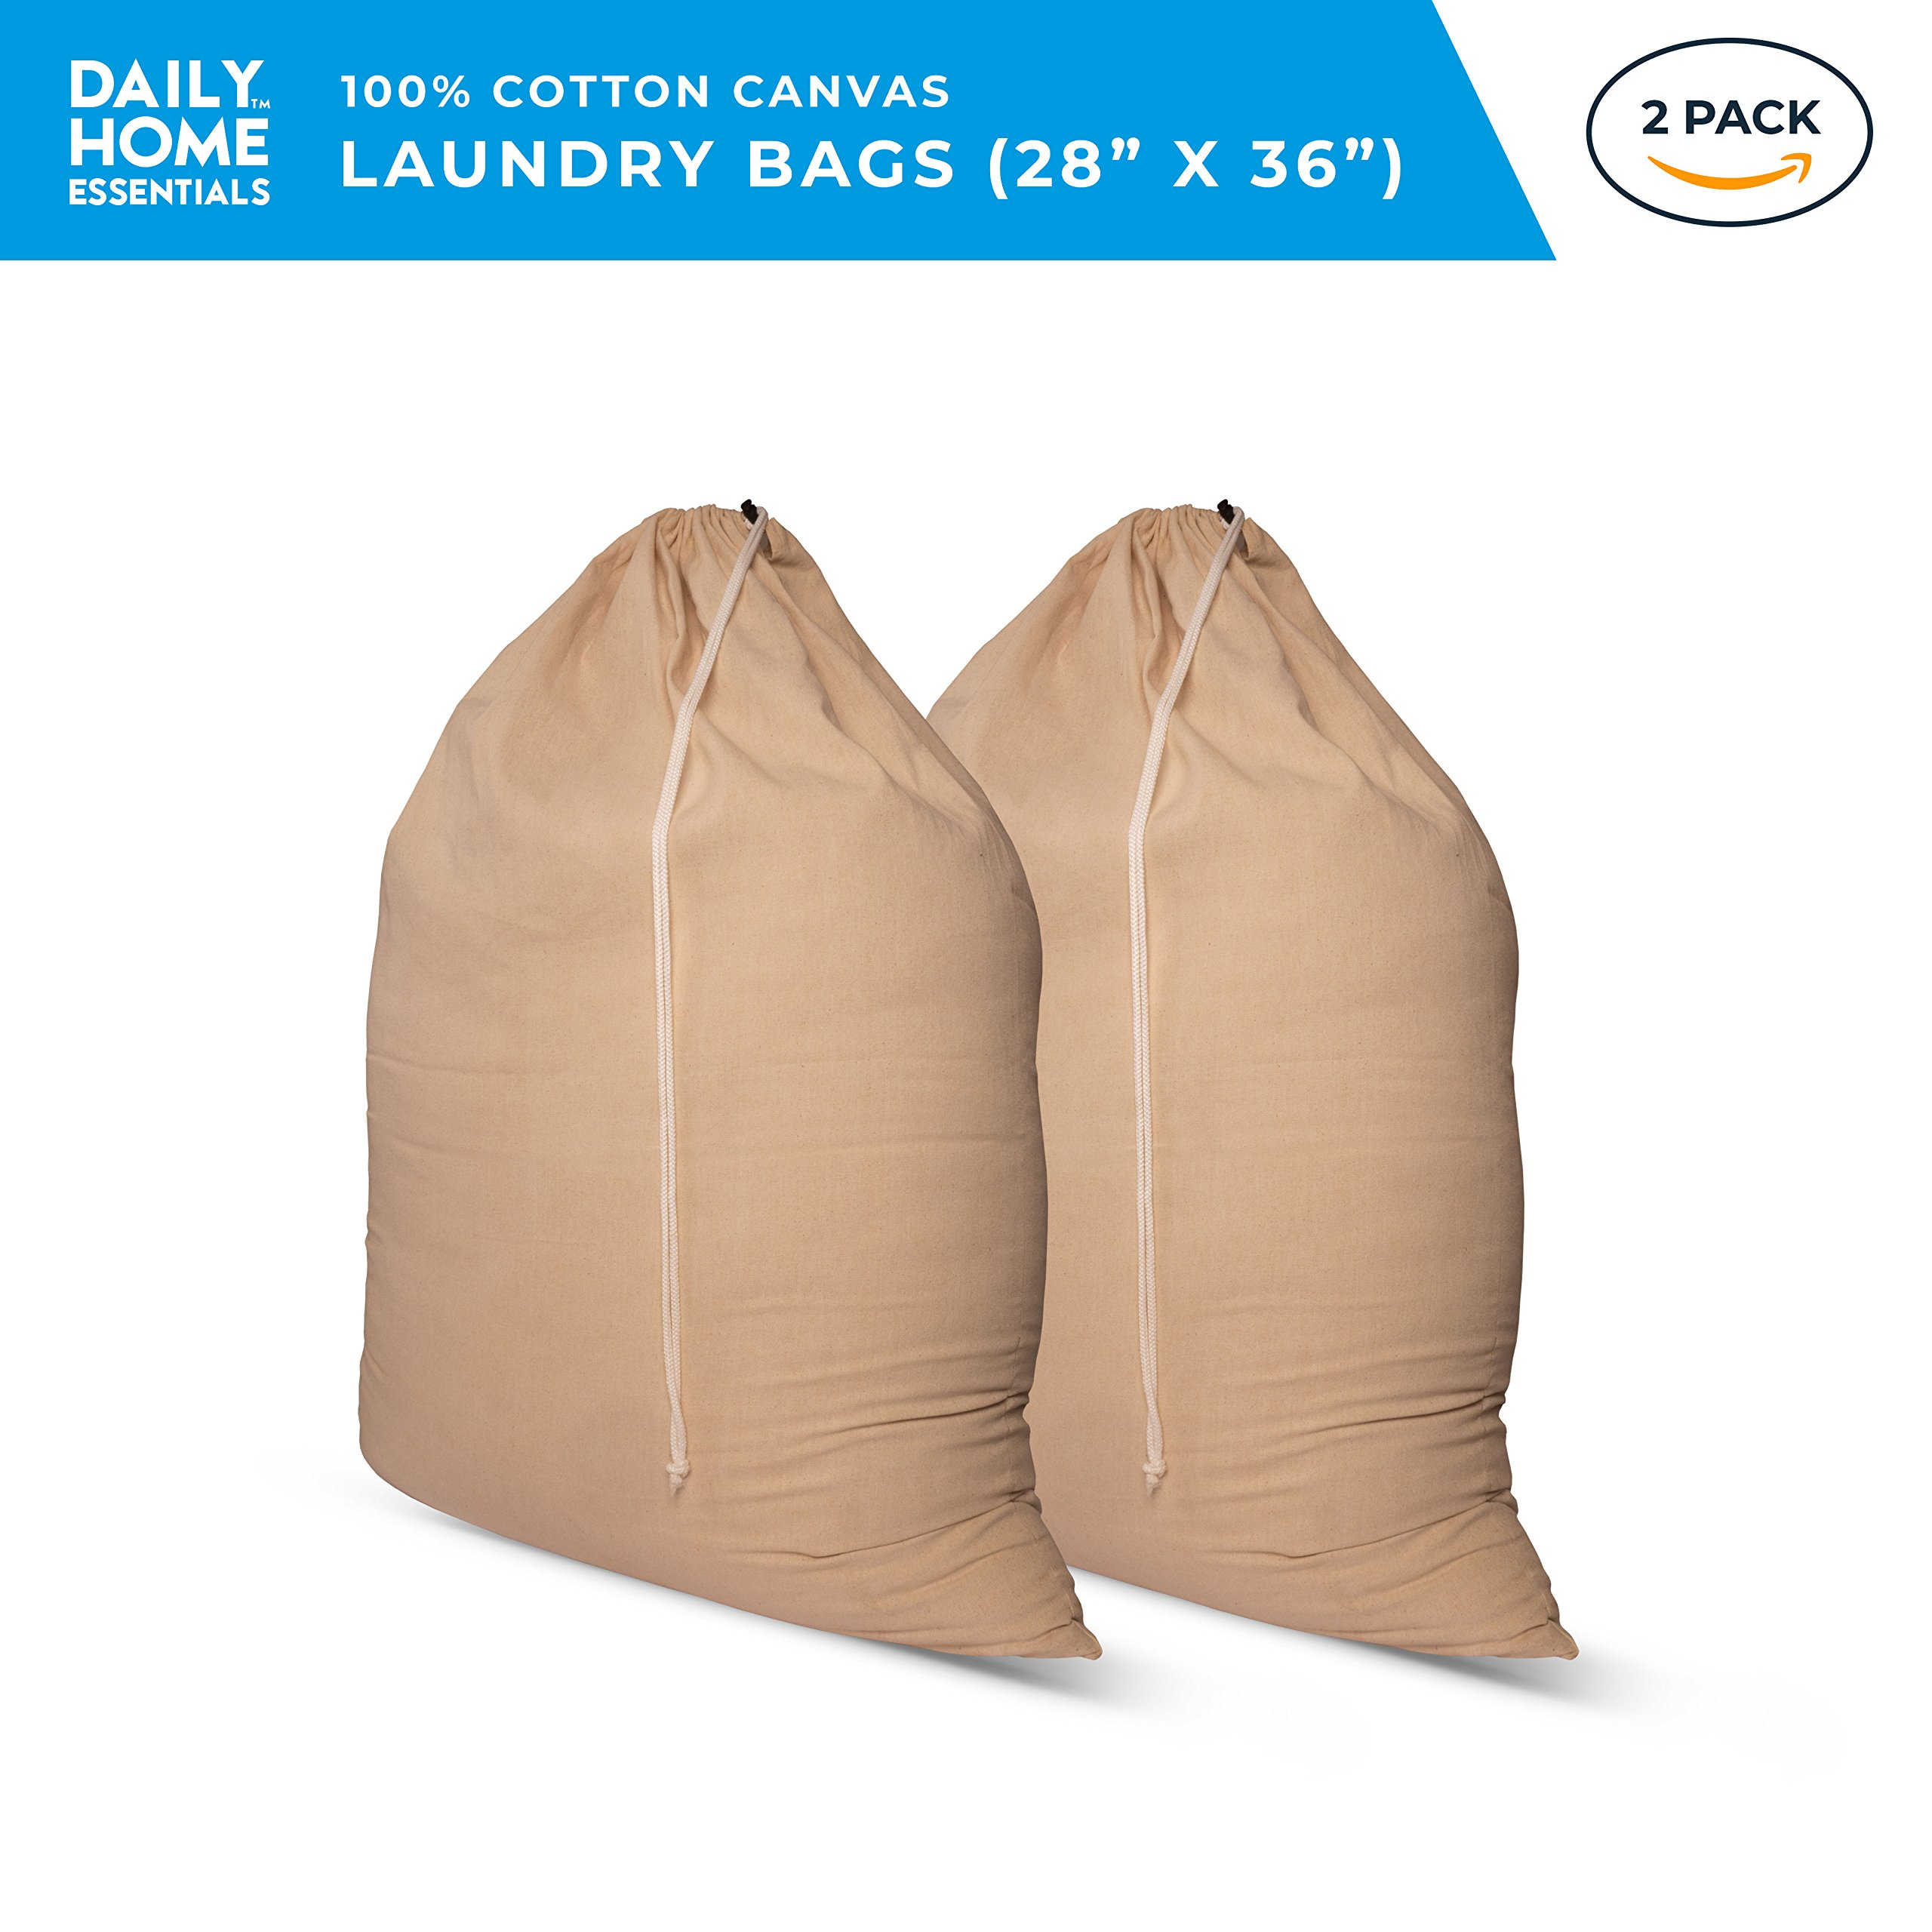 Daily Home Essentials Cotton Canvas Laundry Bags with Drawstring Closure - 2 Pack